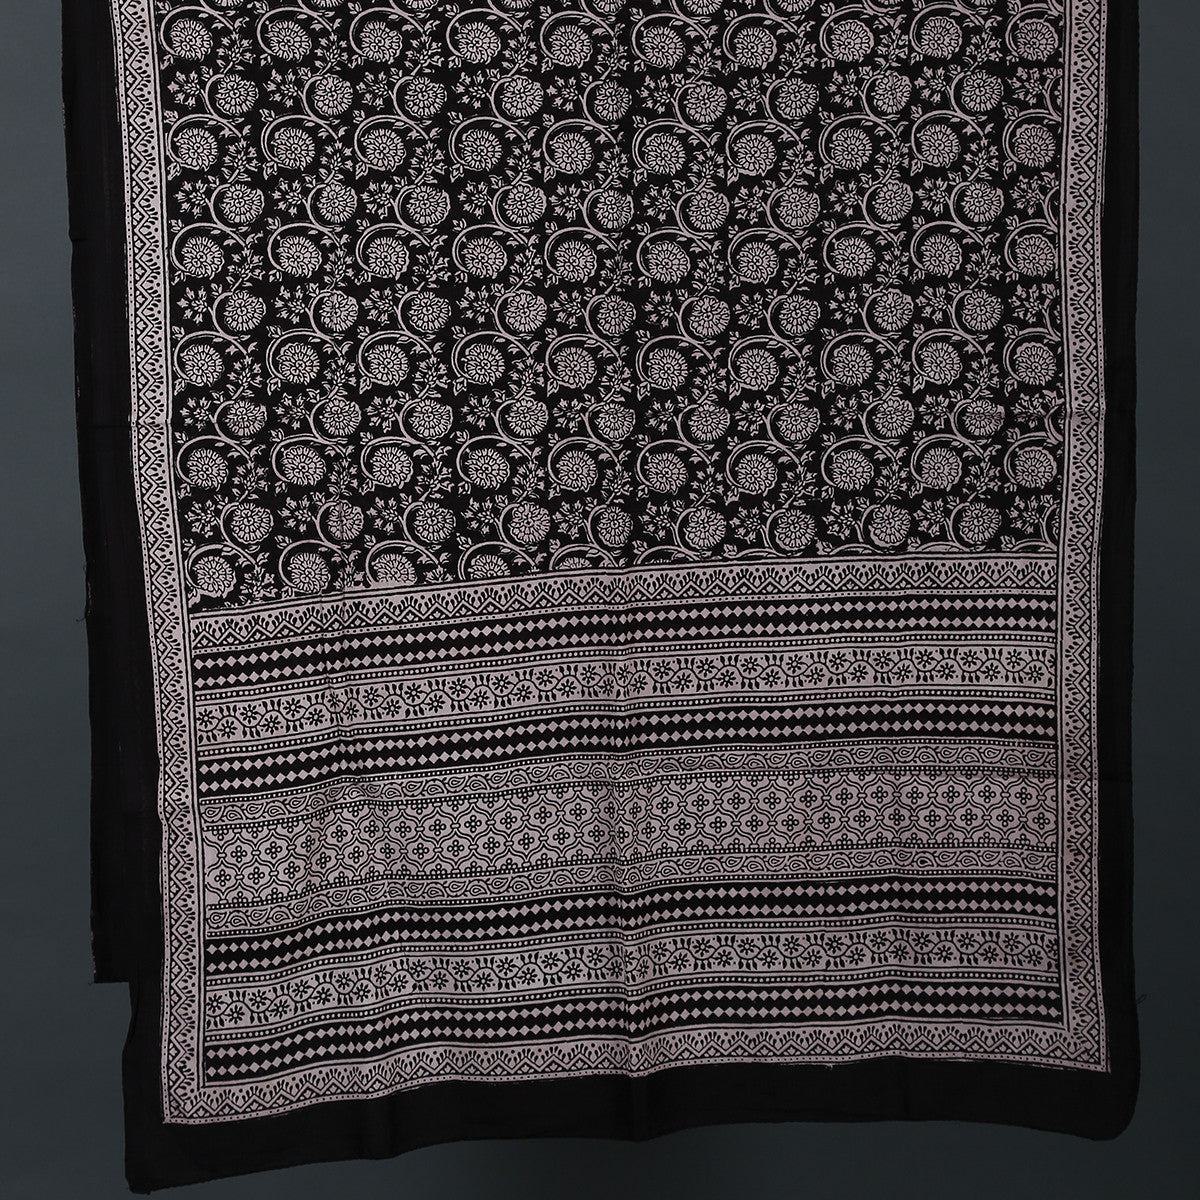 Bagh Hand Block Printed Stole in Cotton 3